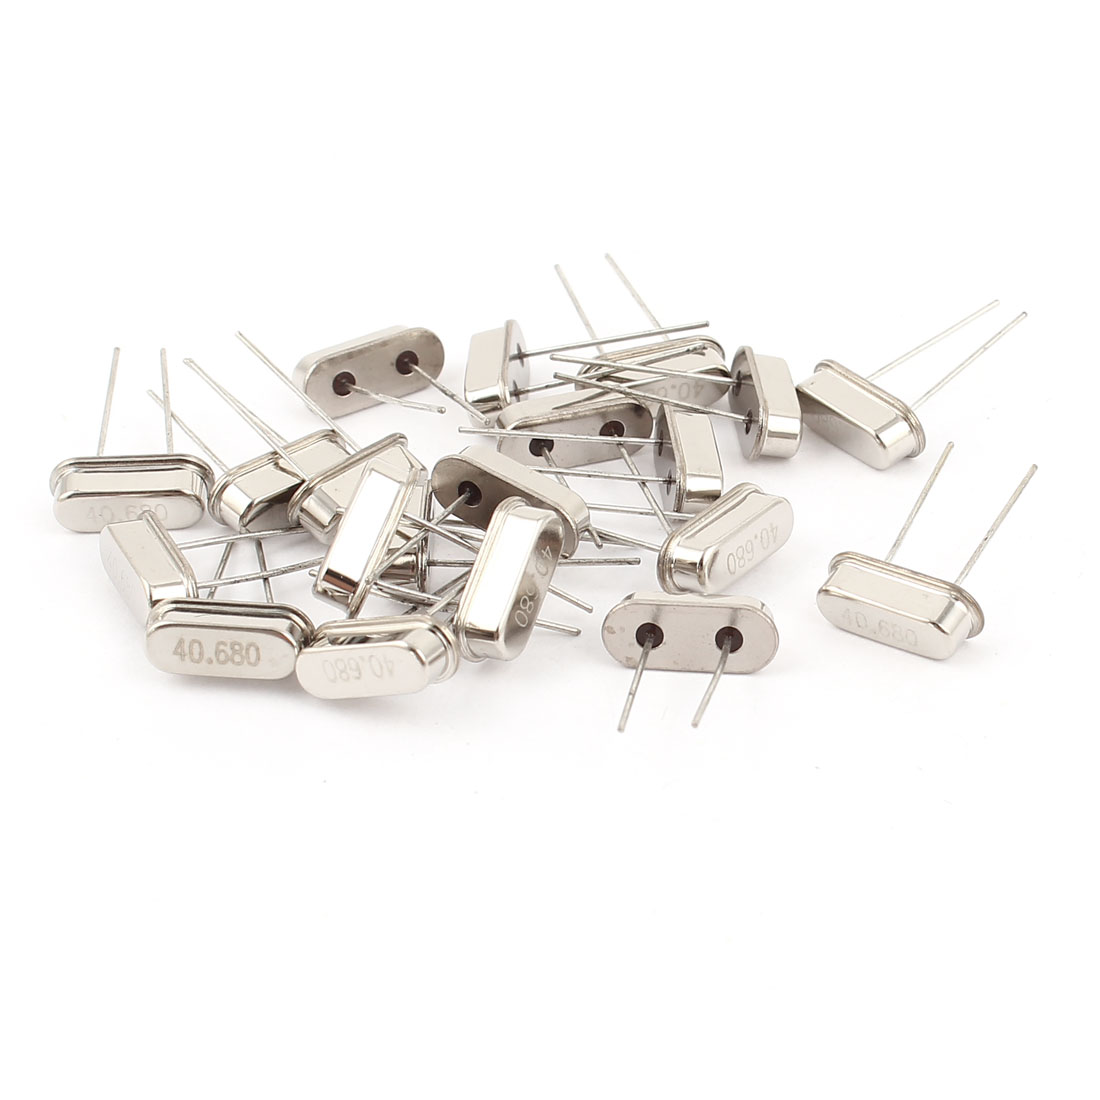 20 Pieces Low Profile 40.680MHZ DIP Quartz Crystal Oscillator HC-49S Replacement